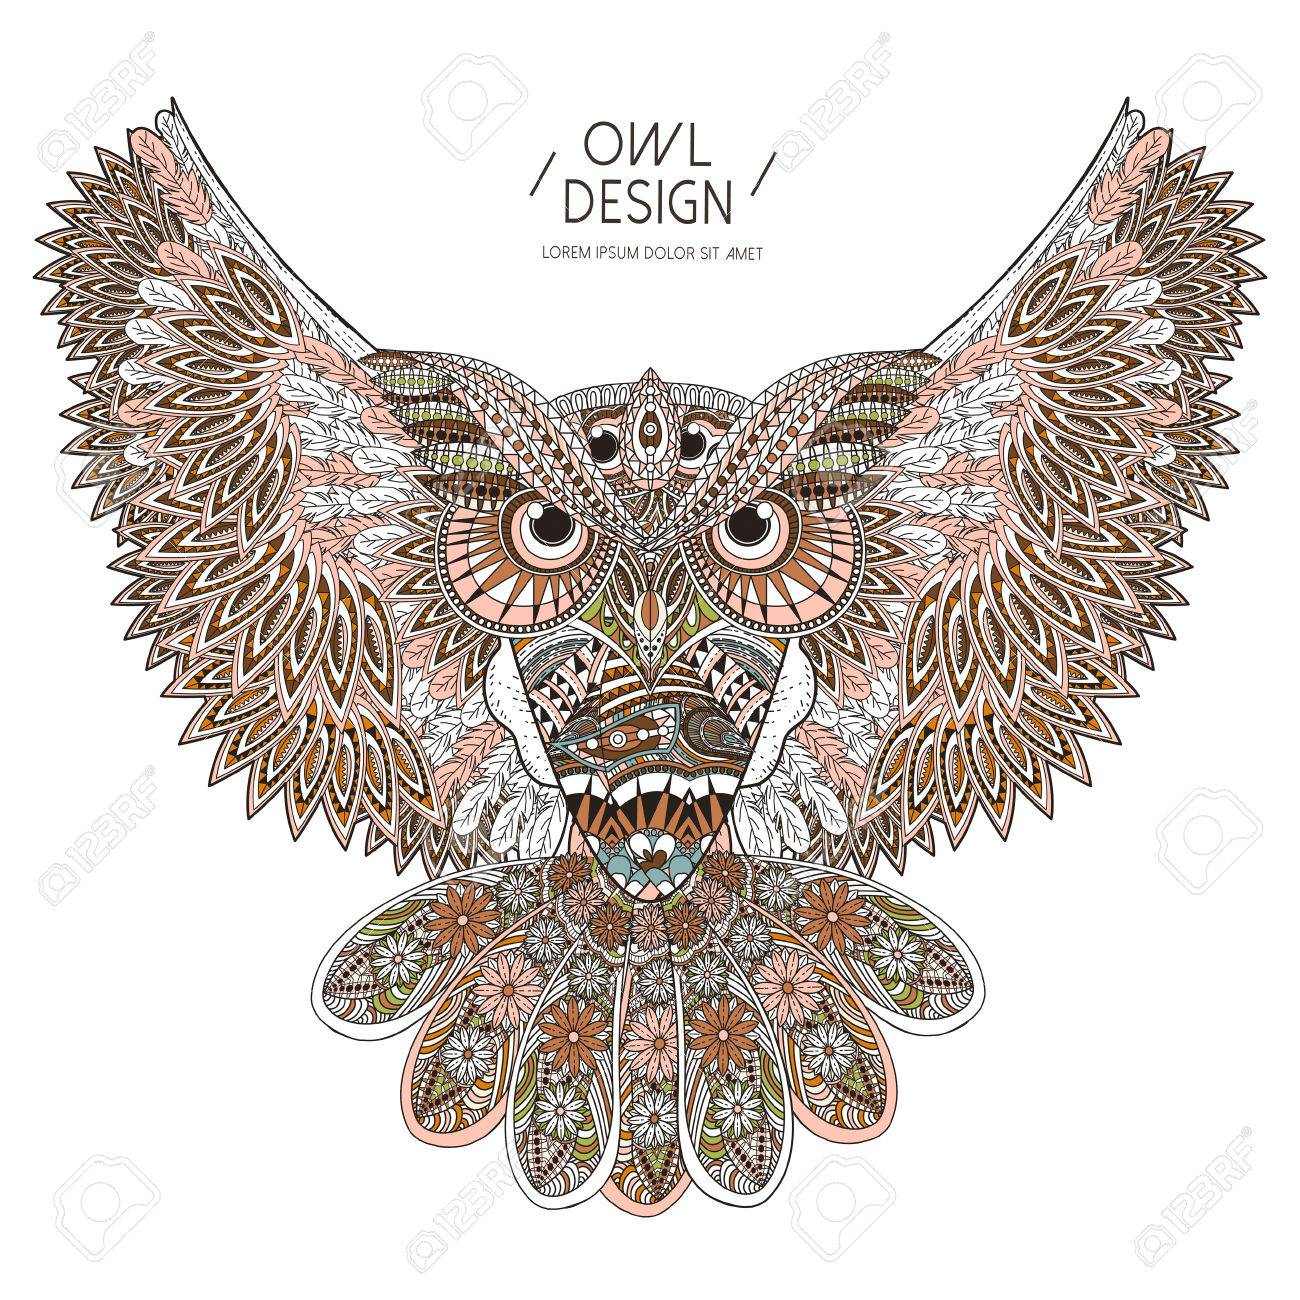 gorgeous owl coloring page design in exquisite style royalty free